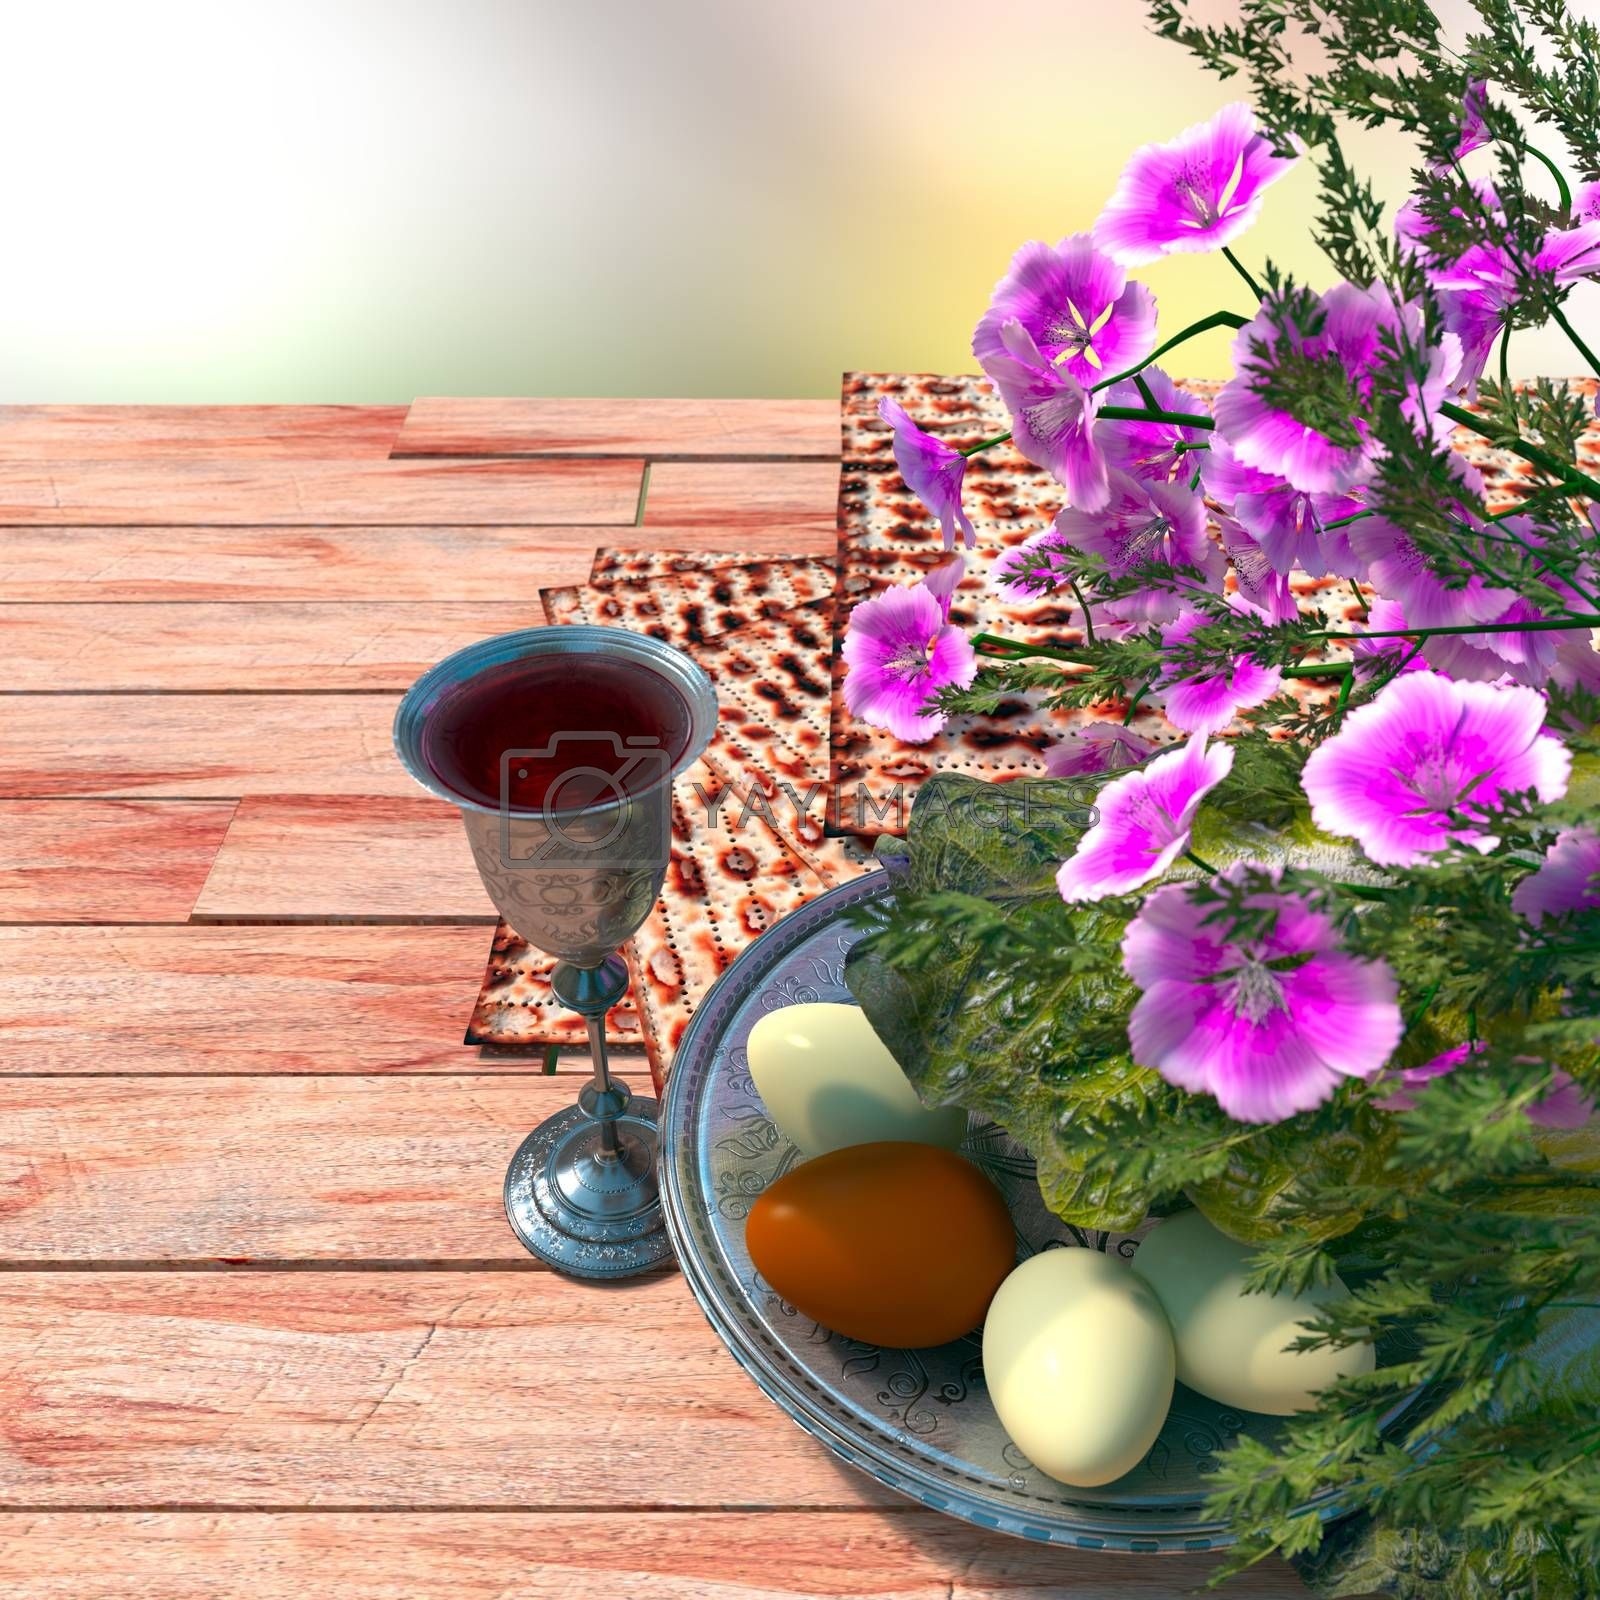 Royalty free image of Jewish celebrate pesach passover with eggs, matzo and flowers on nature background by denisgo